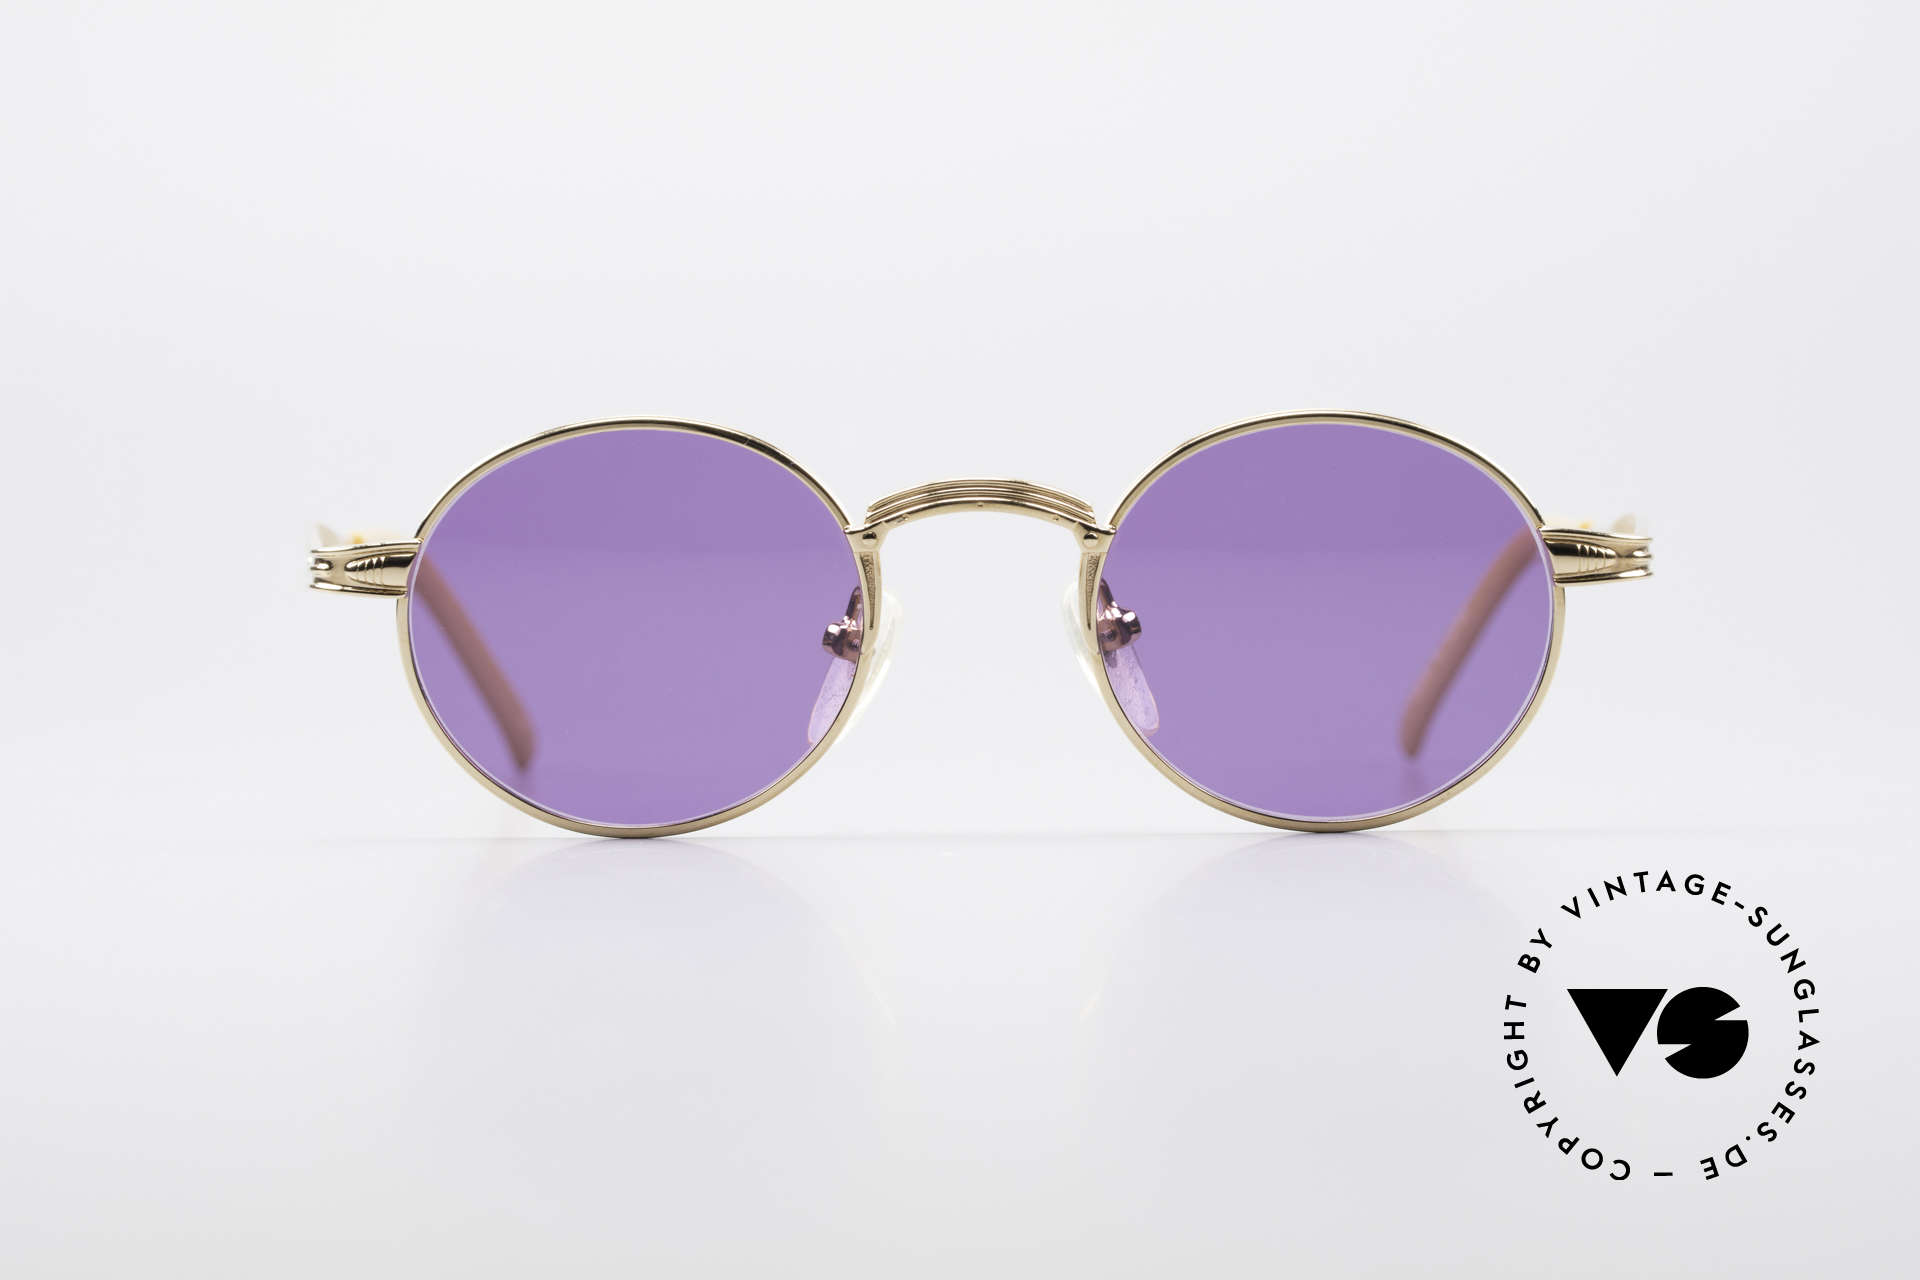 Jean Paul Gaultier 55-7107 Extra Small Round Gold Plated, GP: gold-plated metal frame; extra small size 42/20, Made for Men and Women